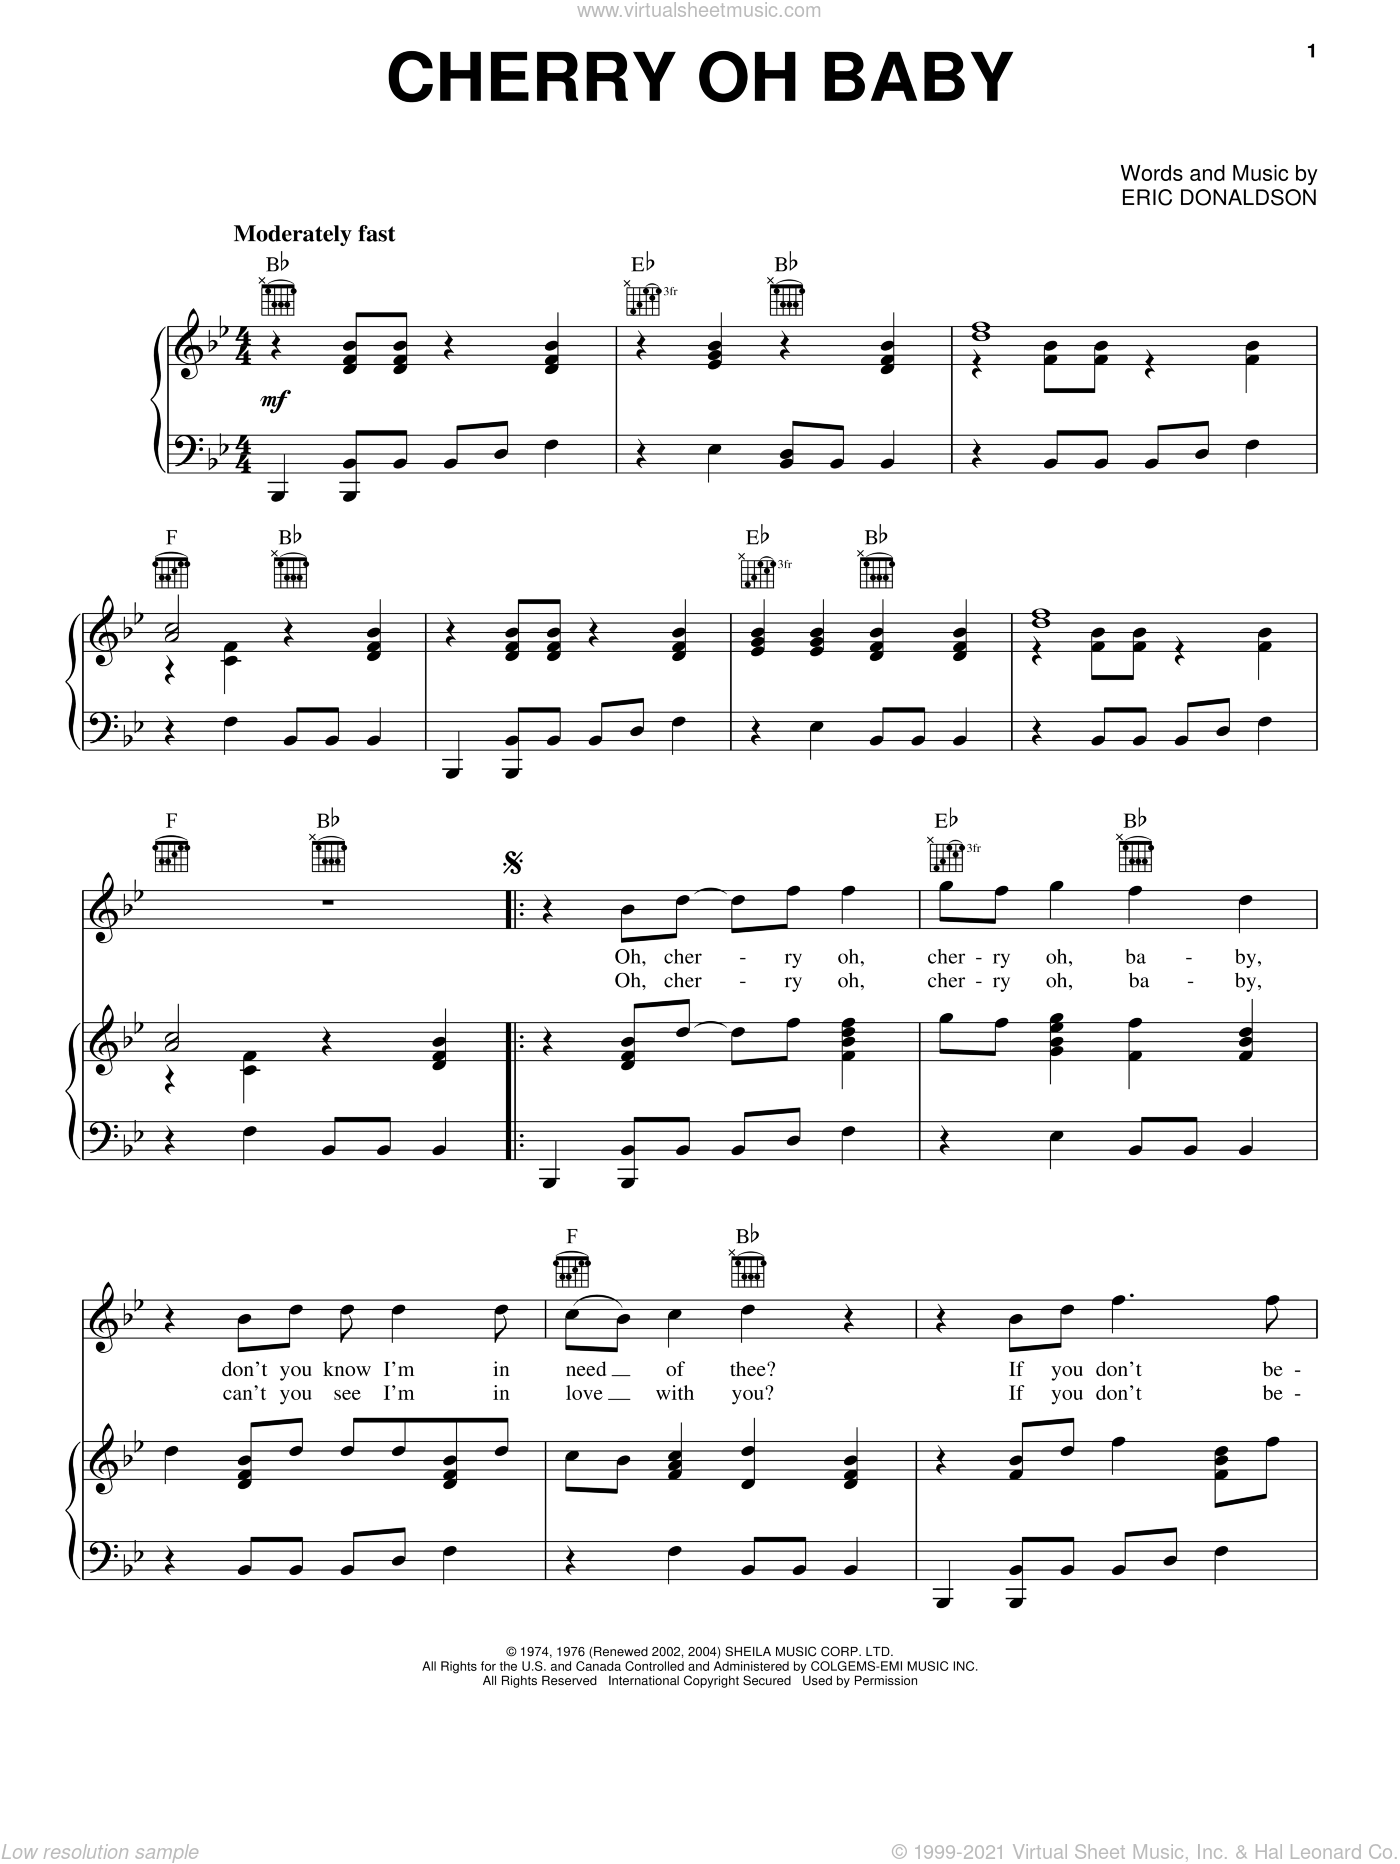 Cherry Oh Baby sheet music for voice, piano or guitar by Eric Donaldson and The Rolling Stones. Score Image Preview.